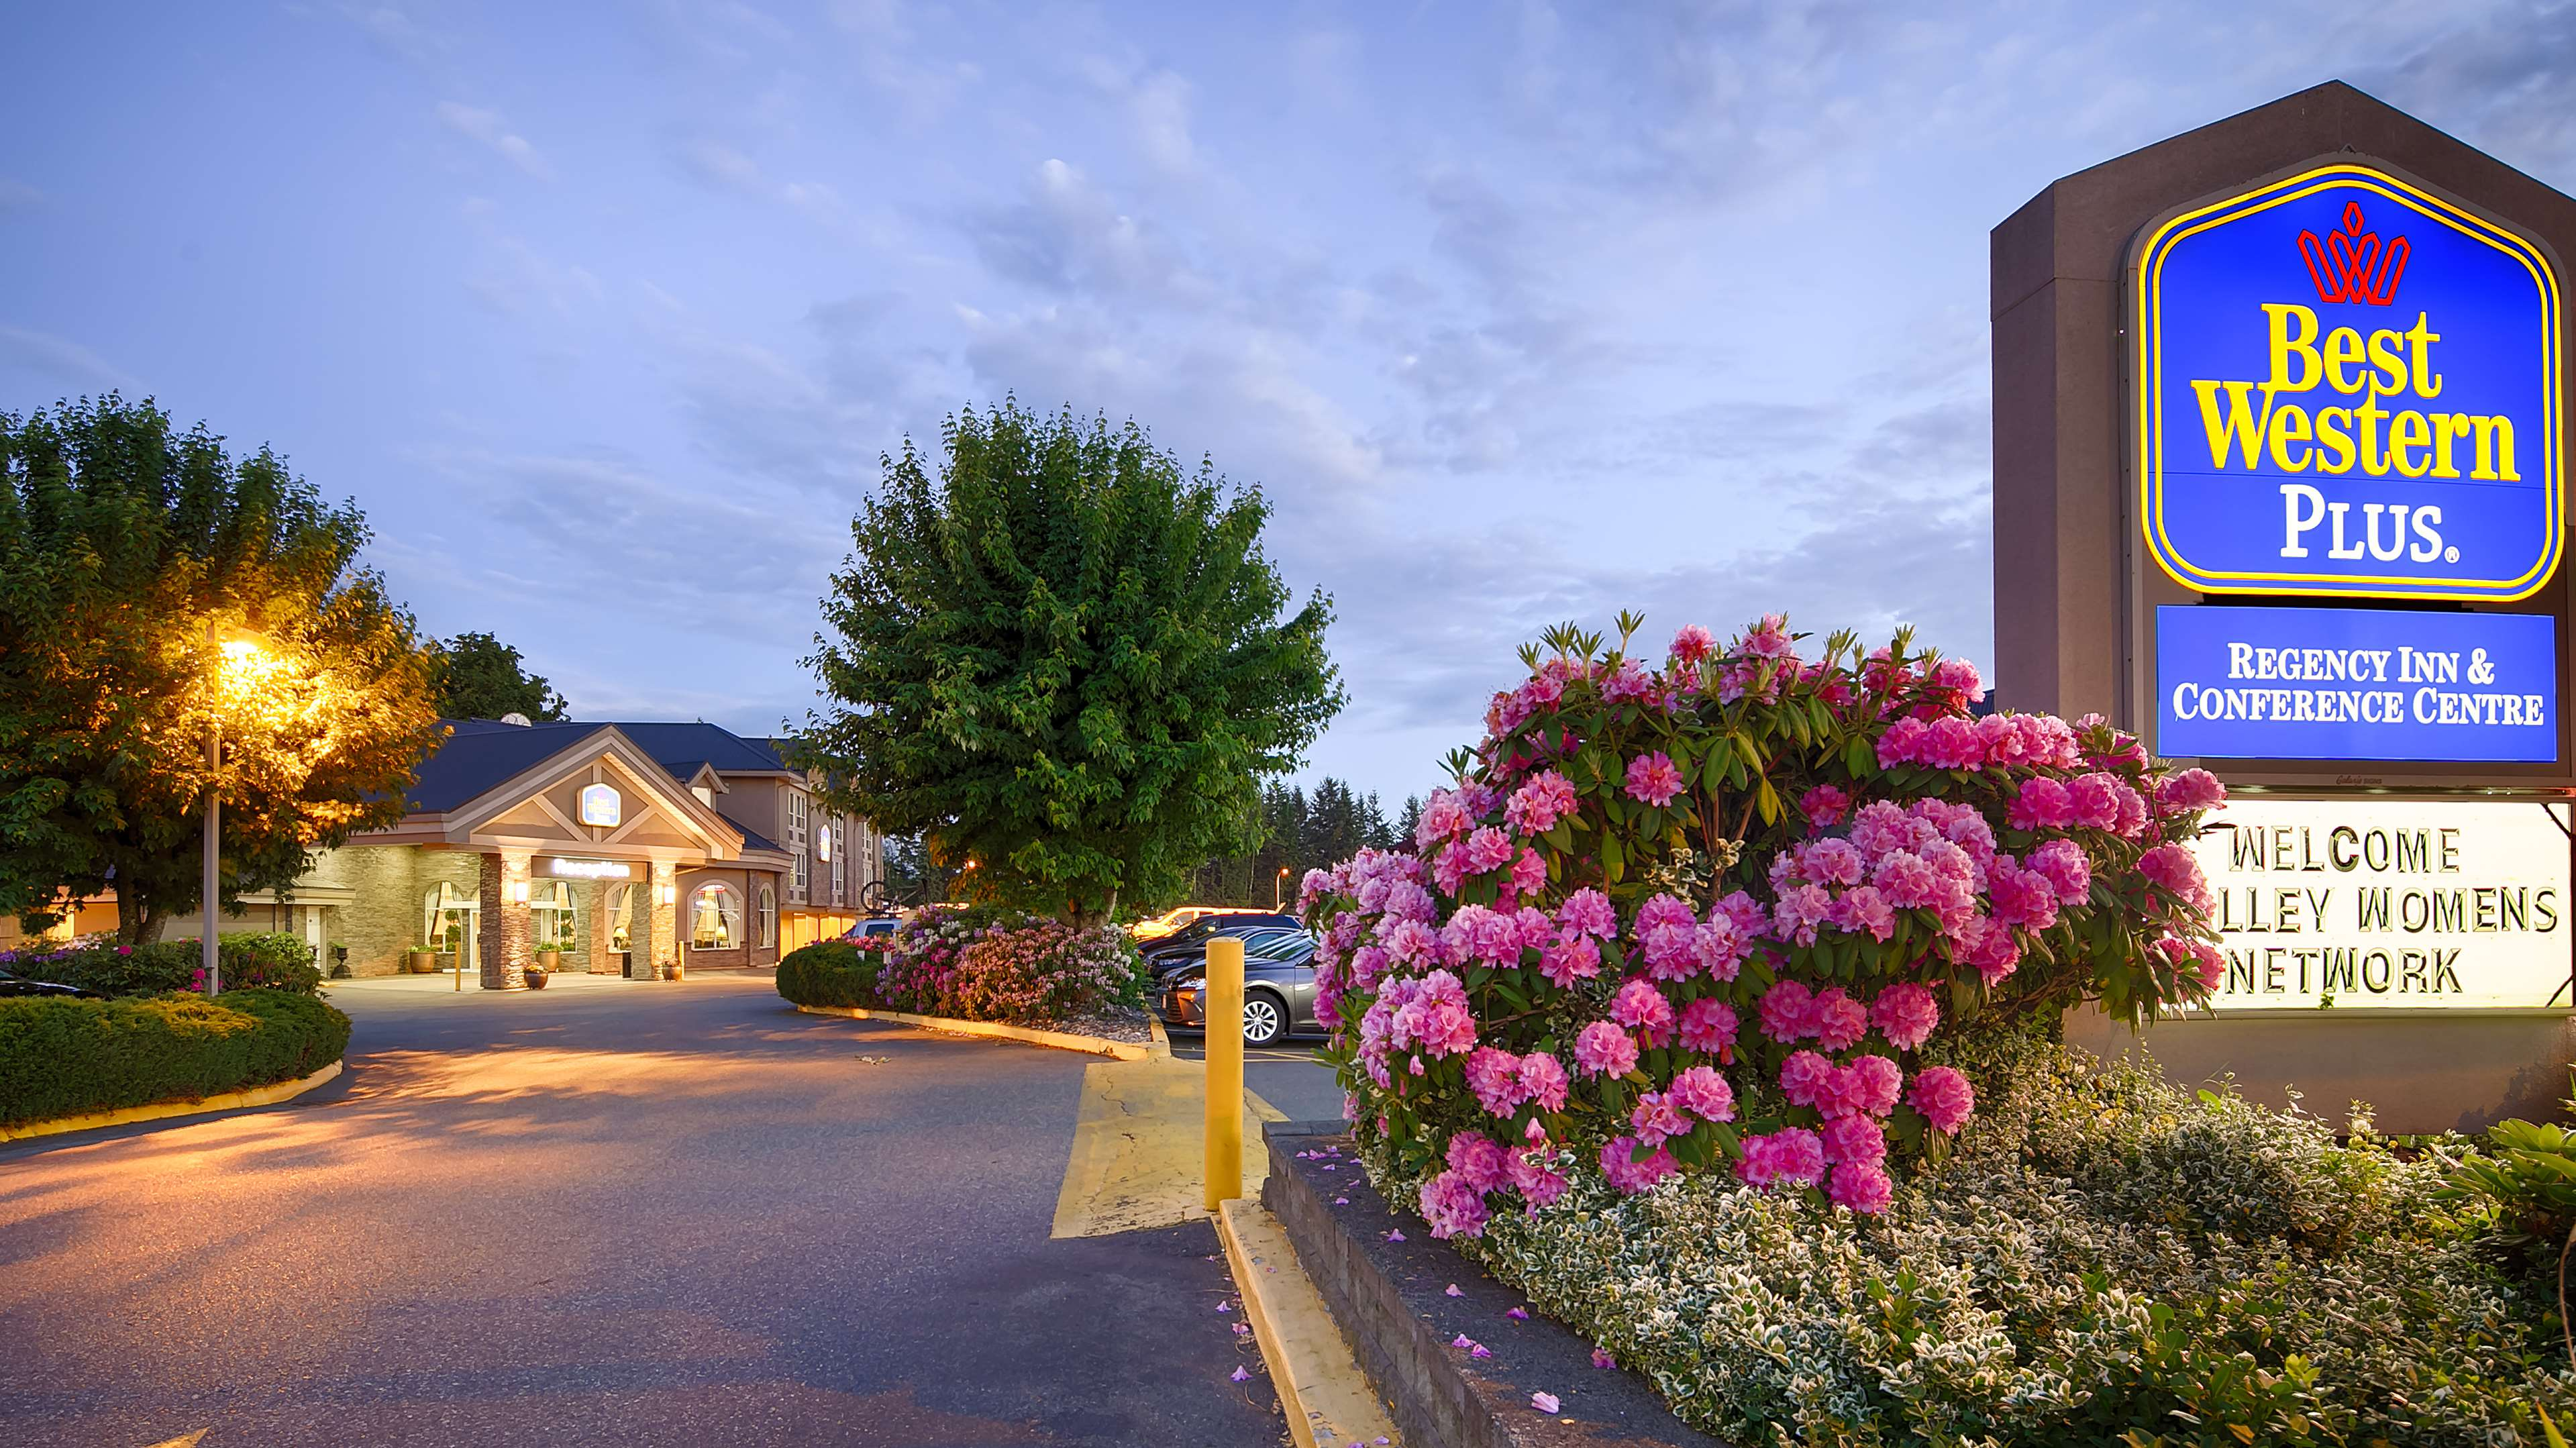 Best Western Plus Regency Inn & Conference Centre in Abbotsford: Exterior